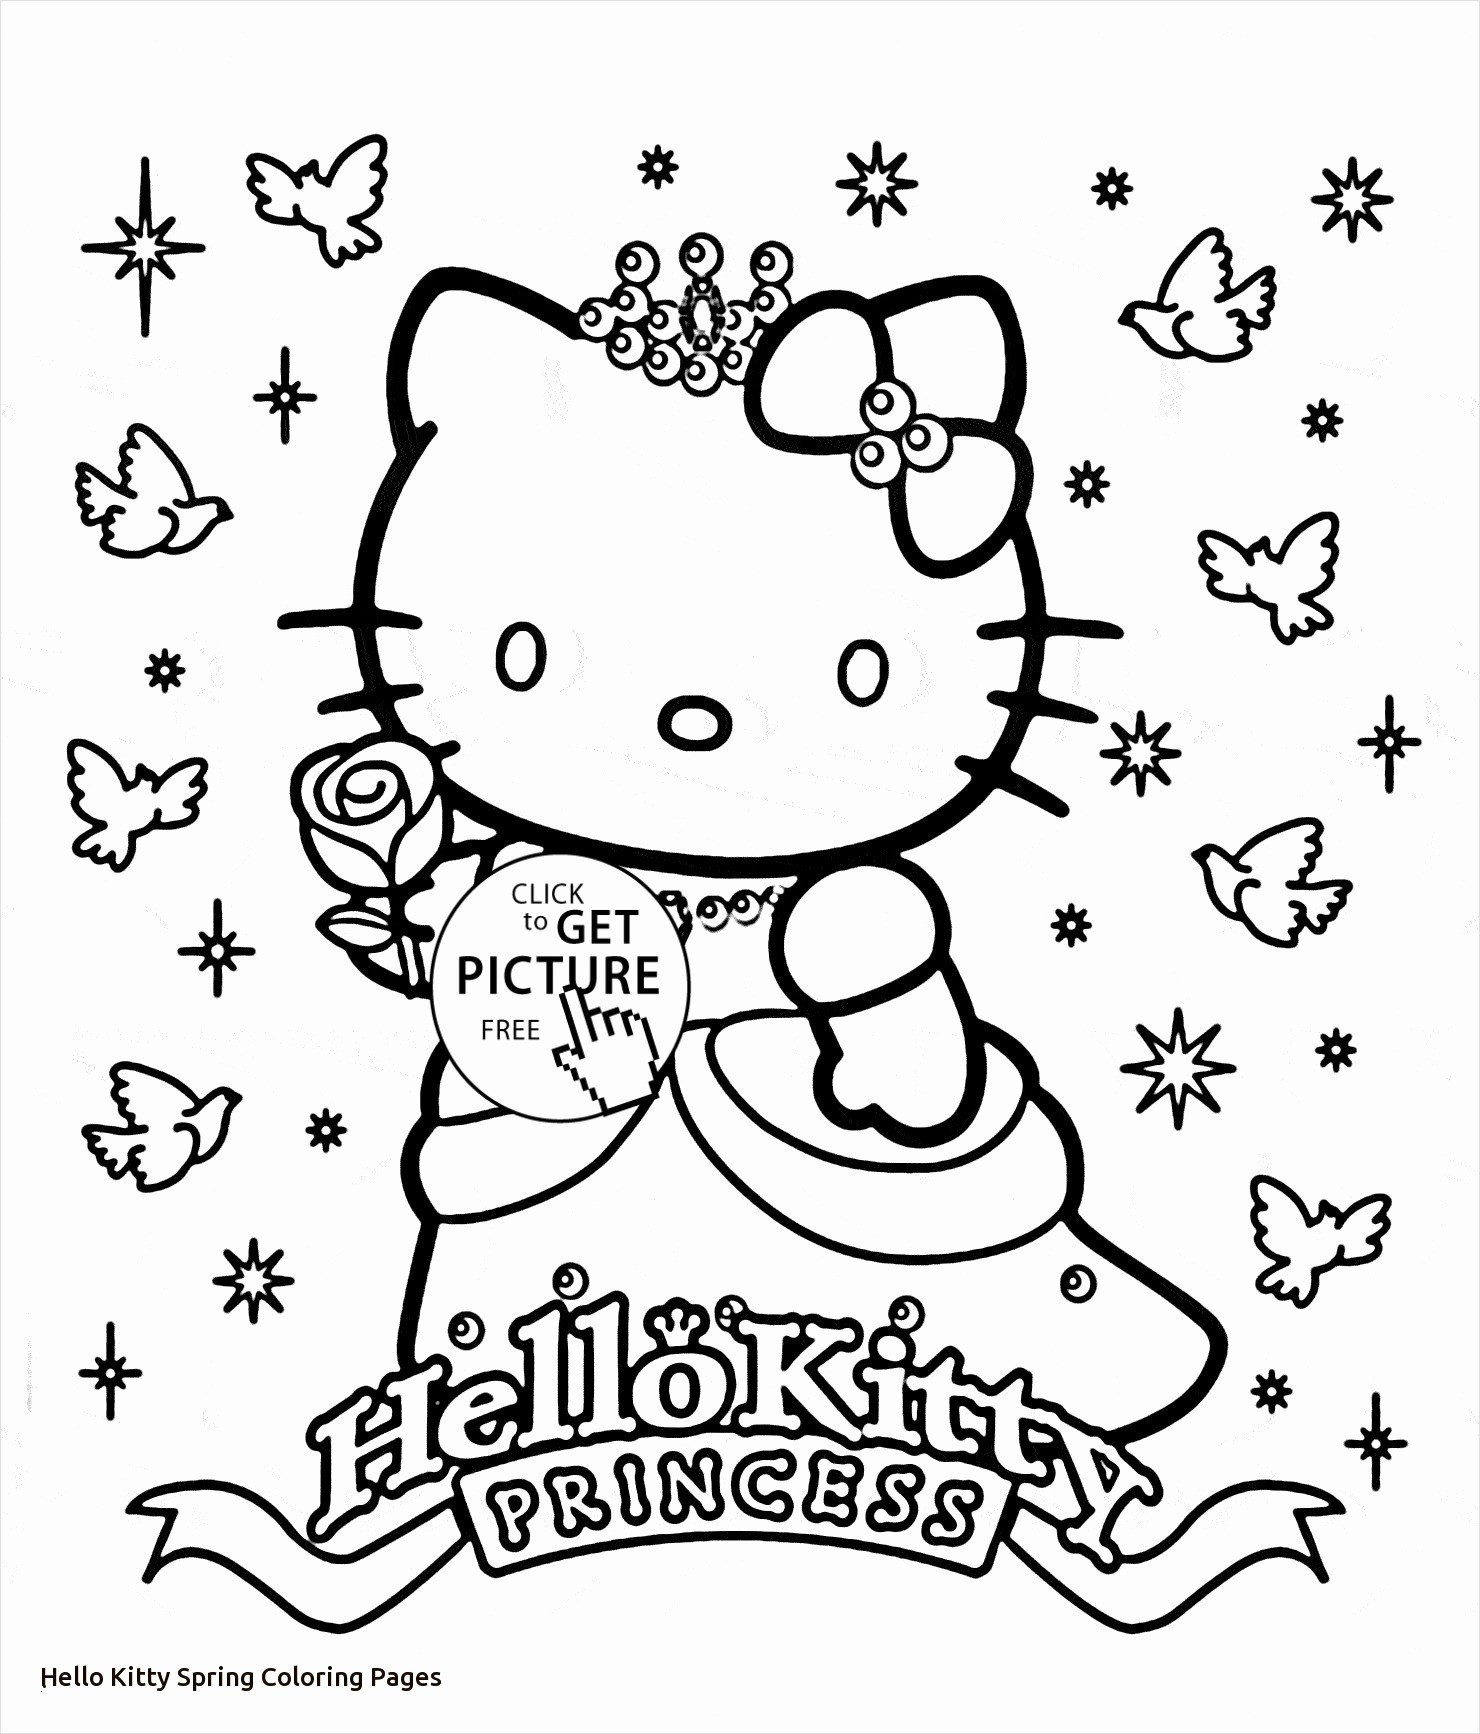 Ausmalbild Hello Kitty Einzigartig 40 Skizze Ausmalbilder Hello Kitty Treehouse Nyc Bilder